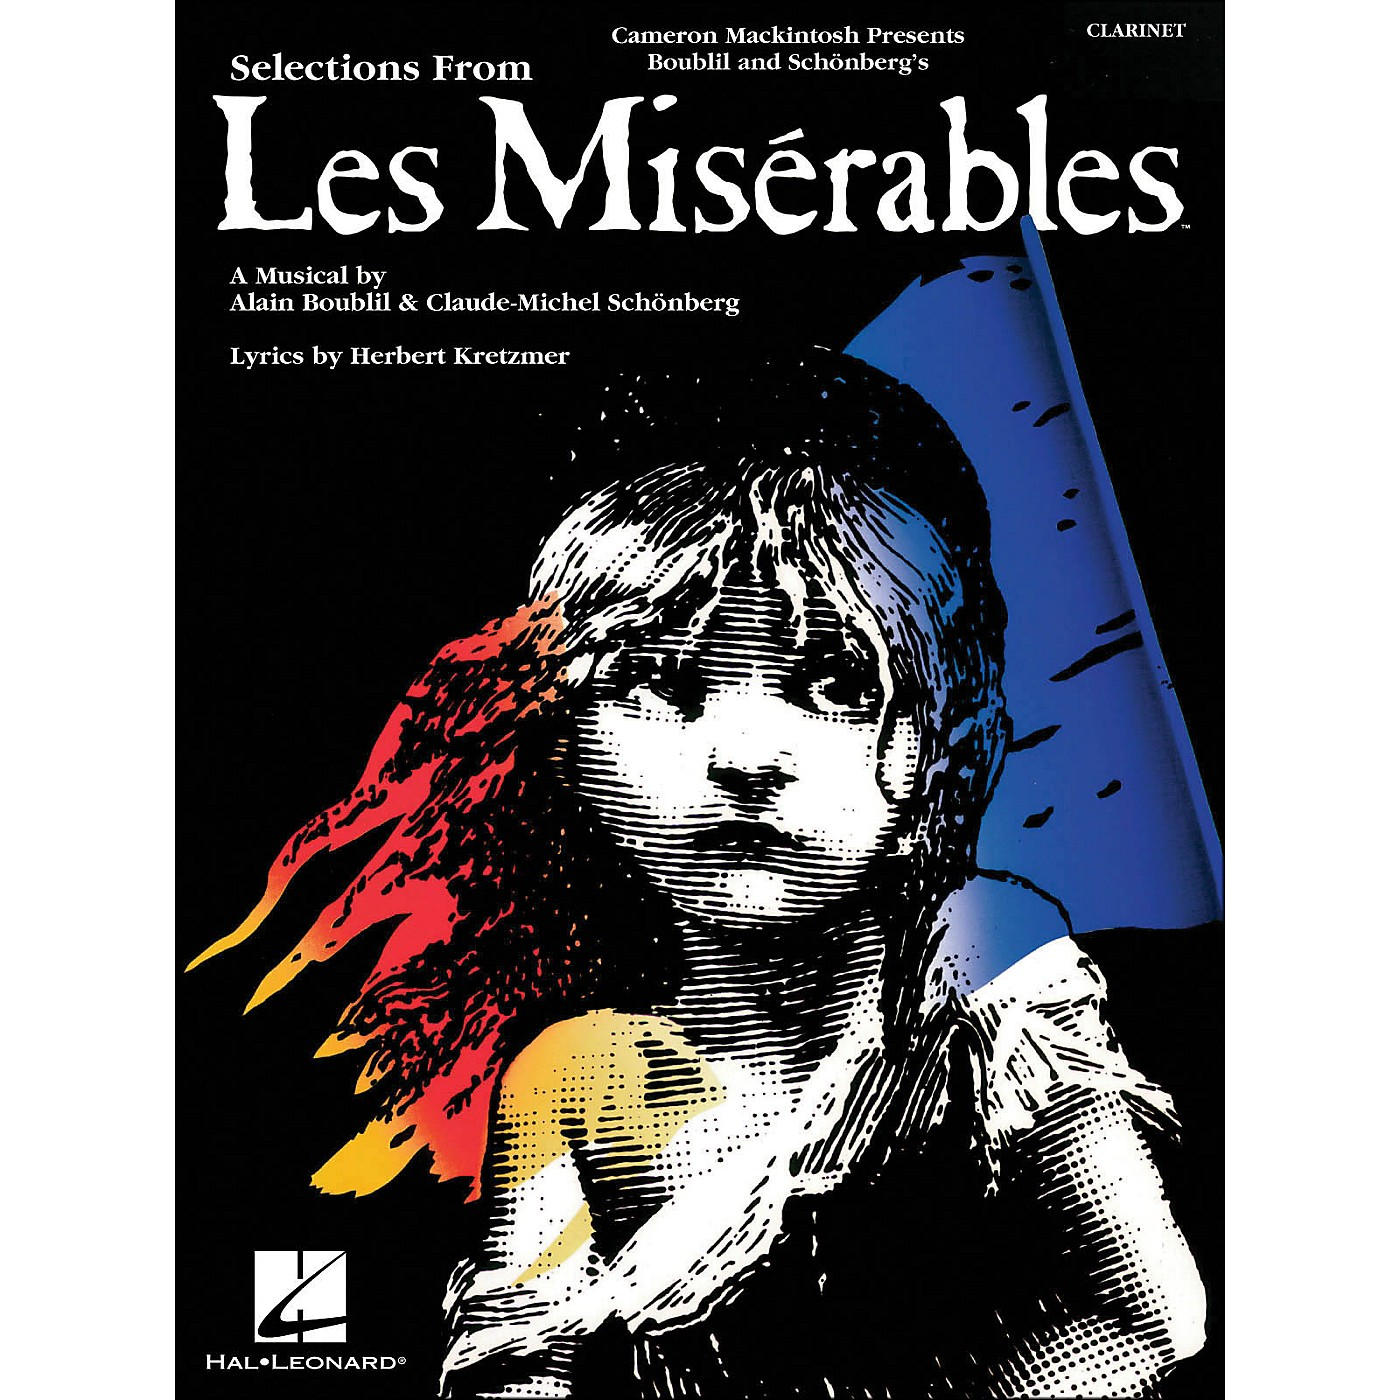 Hal Leonard Selection From Les Miserables for Clarinet thumbnail